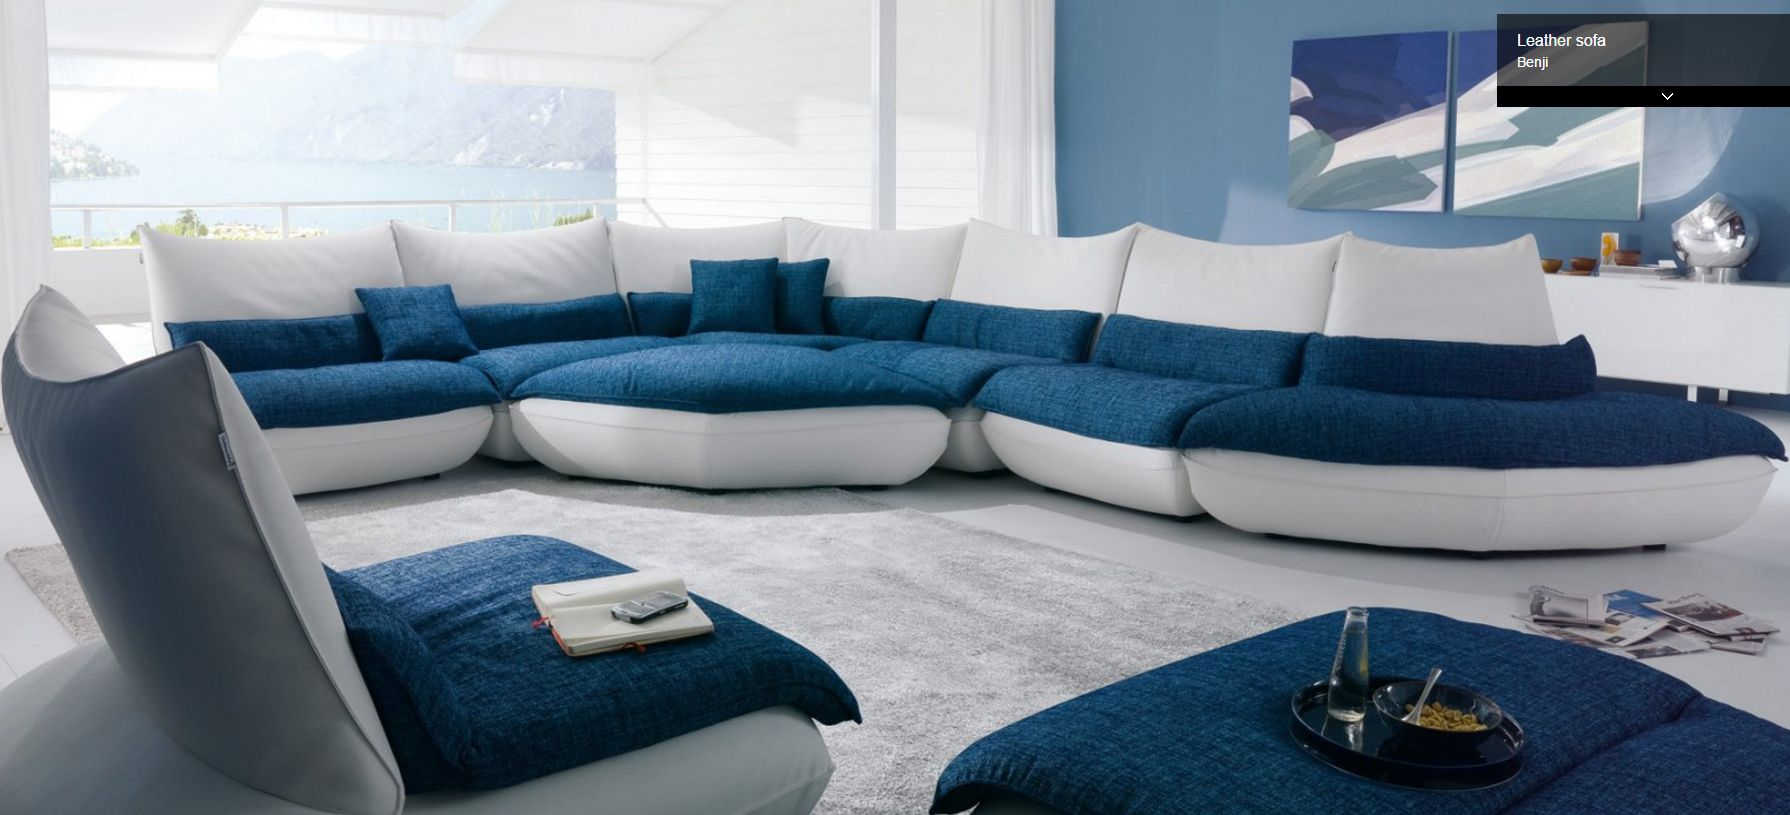 Divani E Divani Chateau D Ax.Benji Sectional By Chateau D Ax Italy Shown As A Leather And Fabric Combination Visit Webs Italian Leather Sofa Italian Leather Sectional Sofa Sofa Armchair